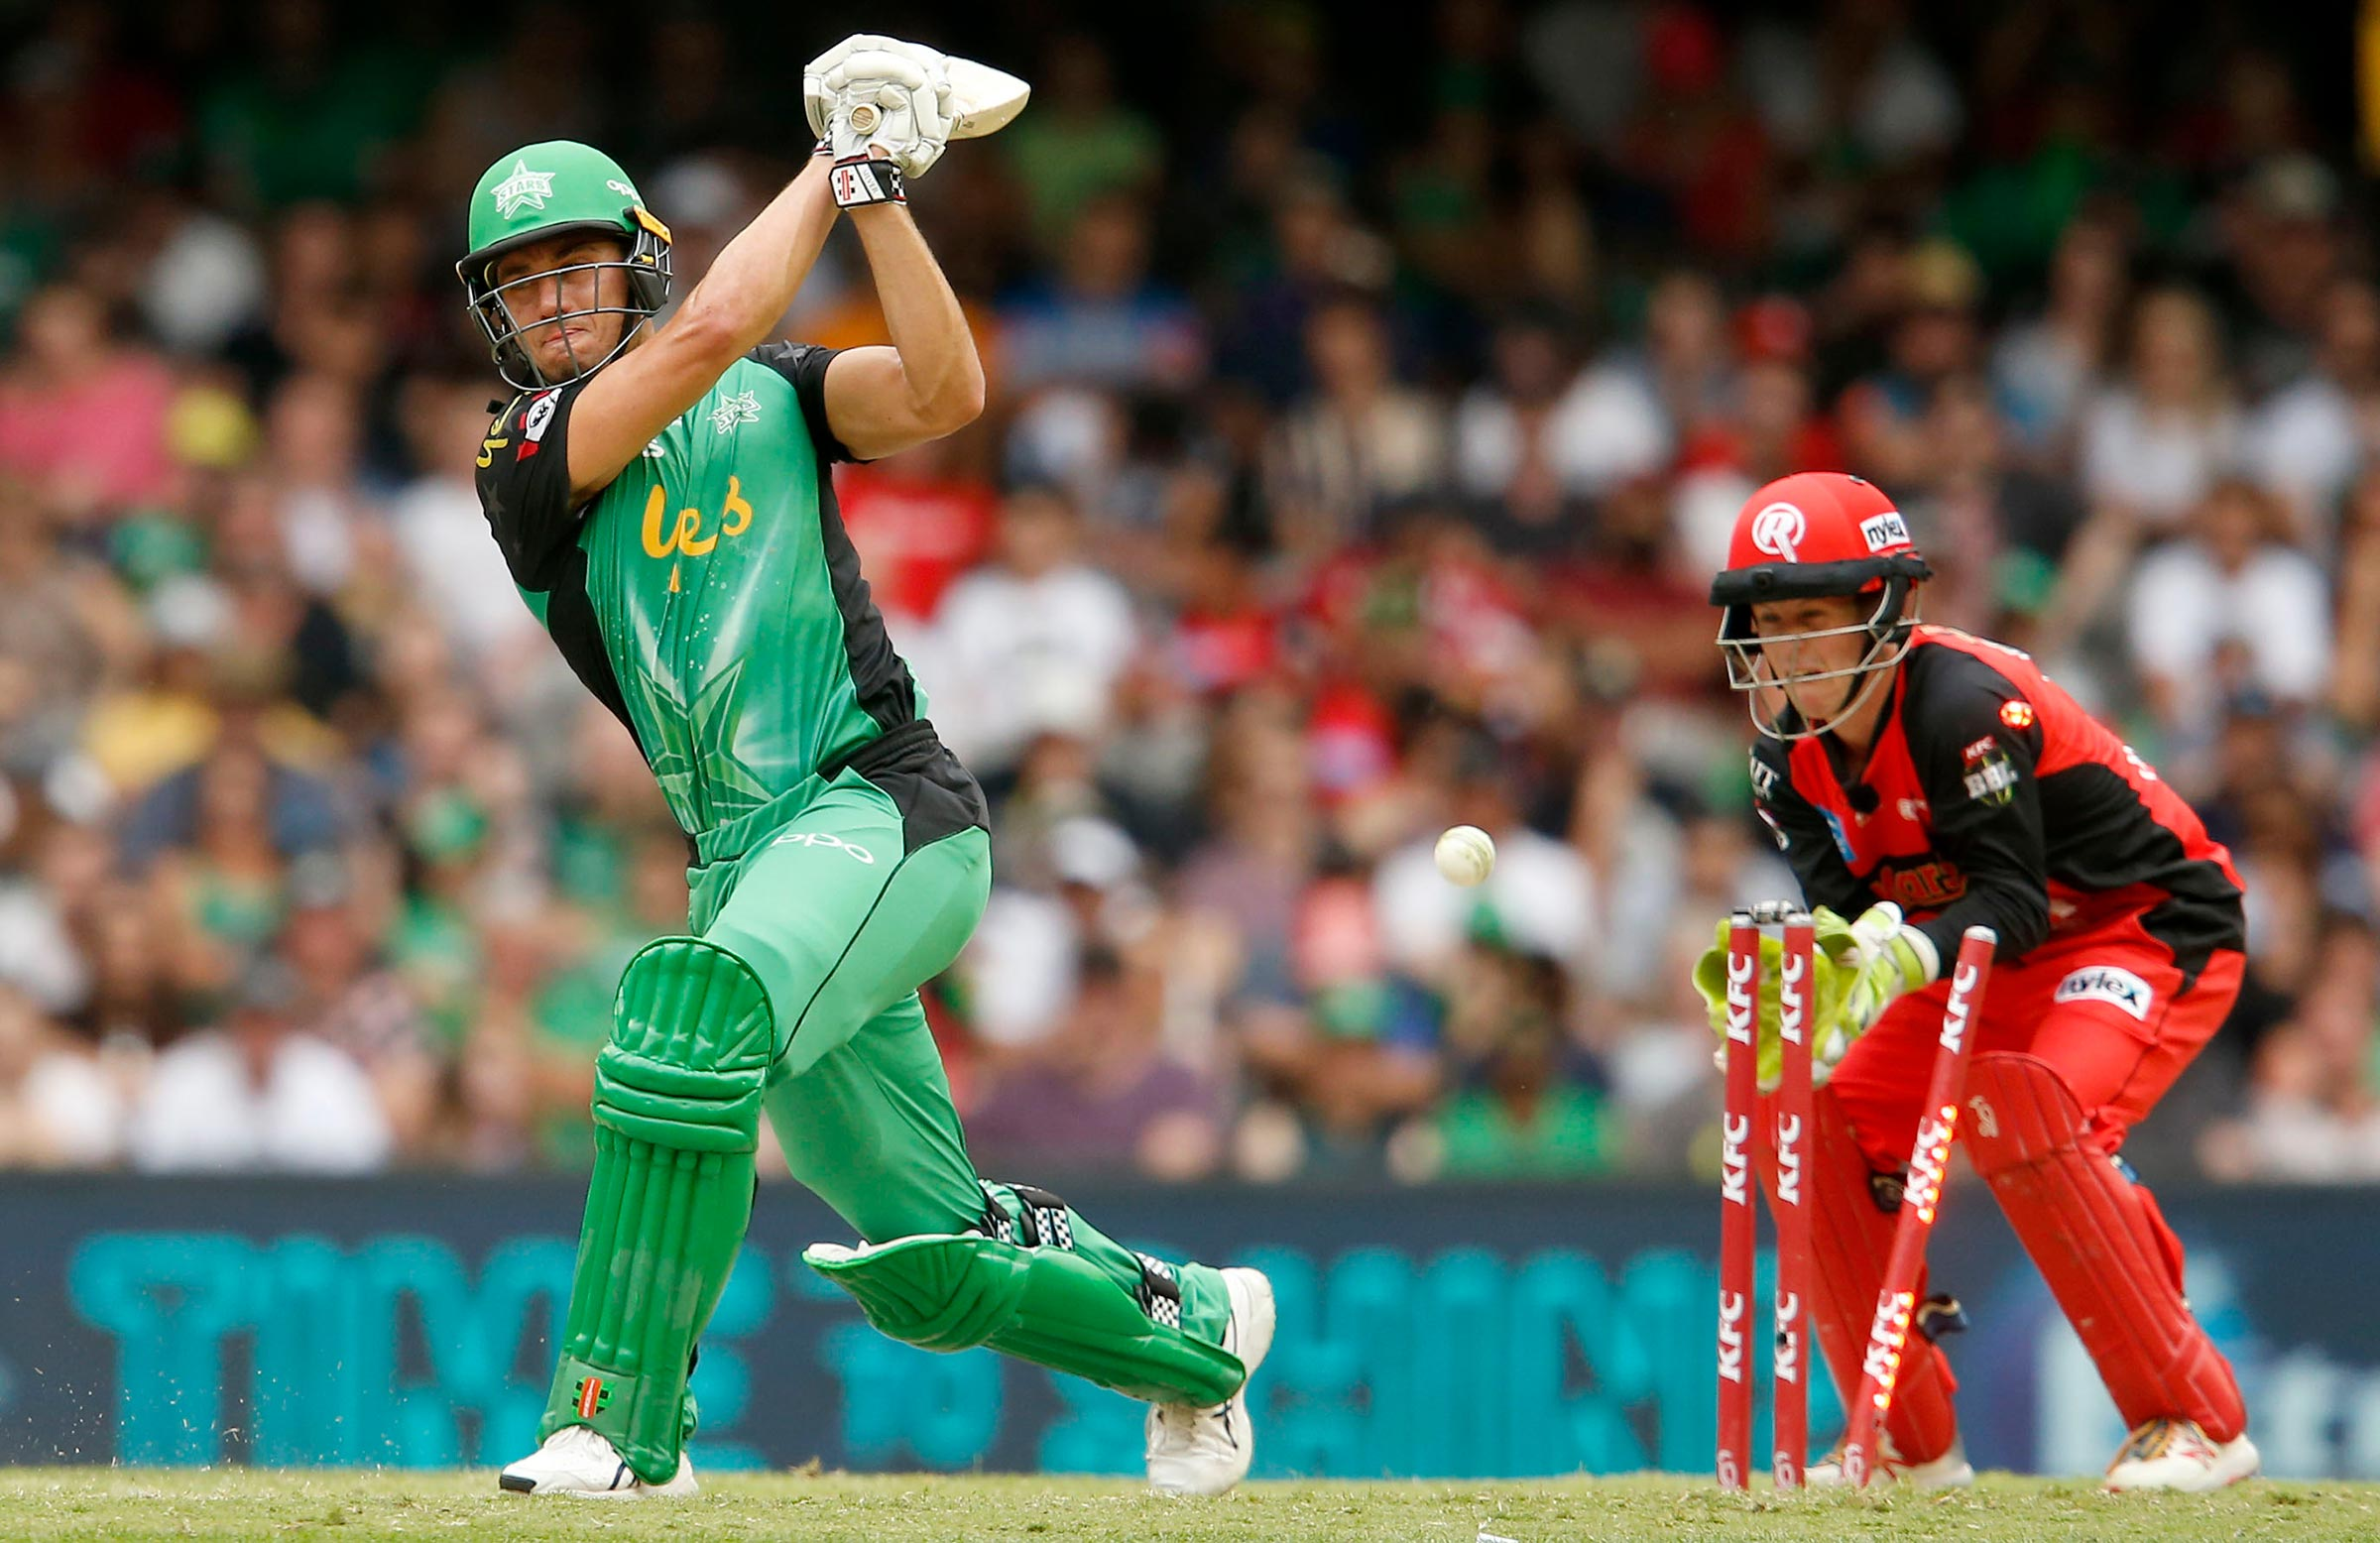 Stoinis' dismissal sparked collapse // Getty